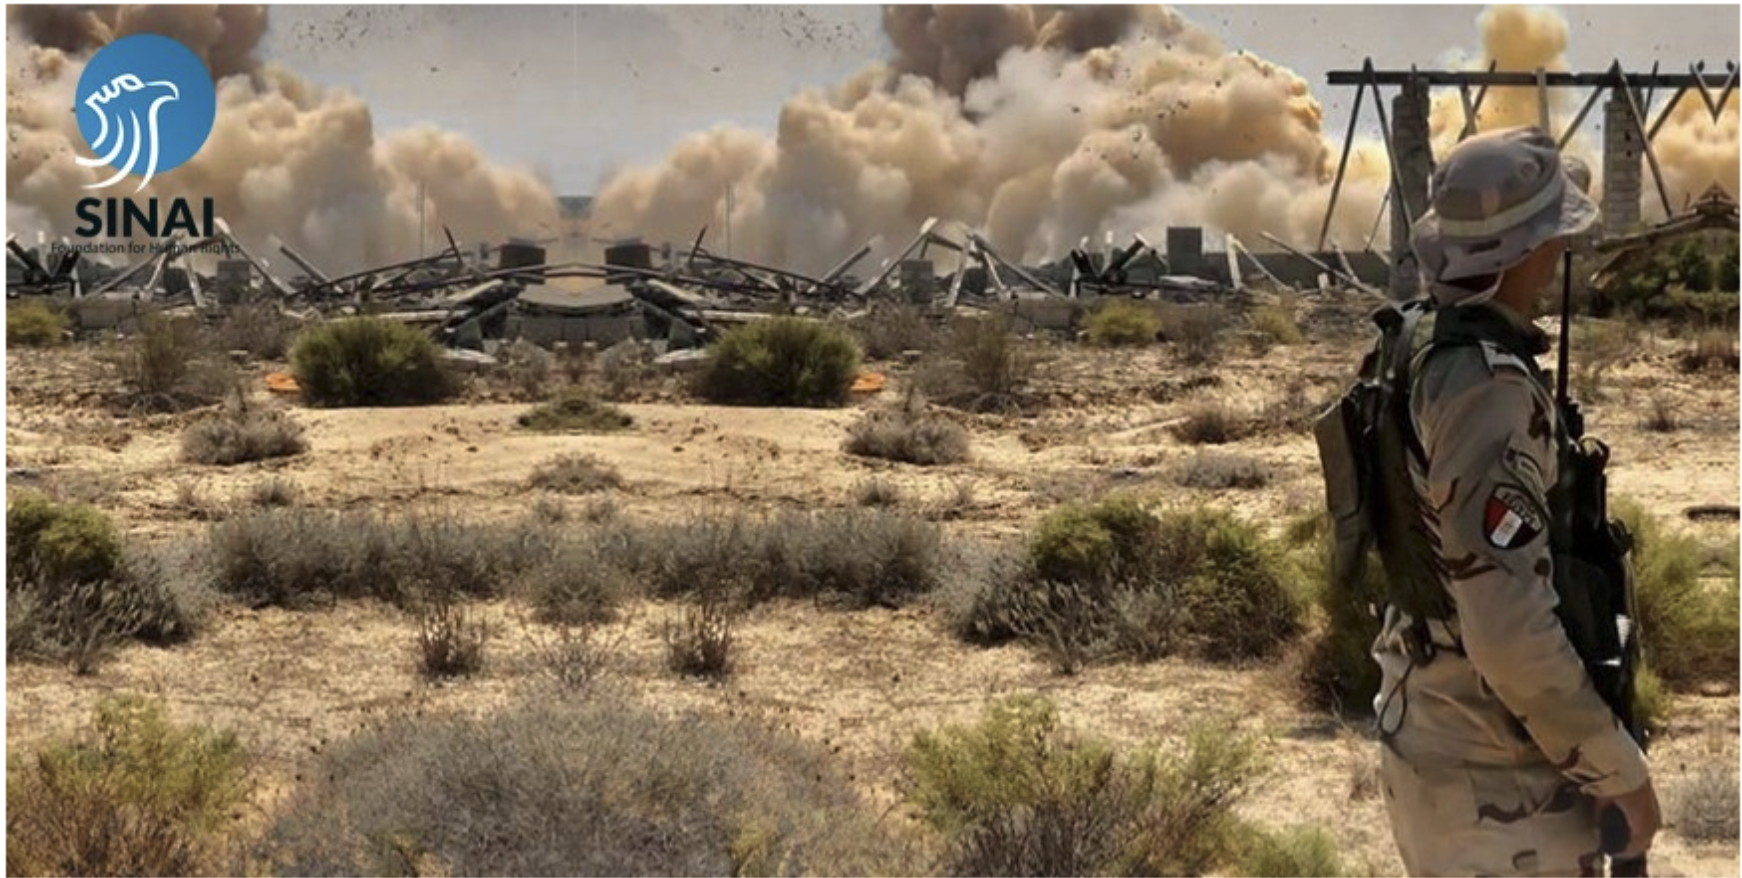 Press Release: The Sinai Foundation for Human Rights reveals in a detailed report the gross violations committed by conflicting parties in Egyptian Sinai